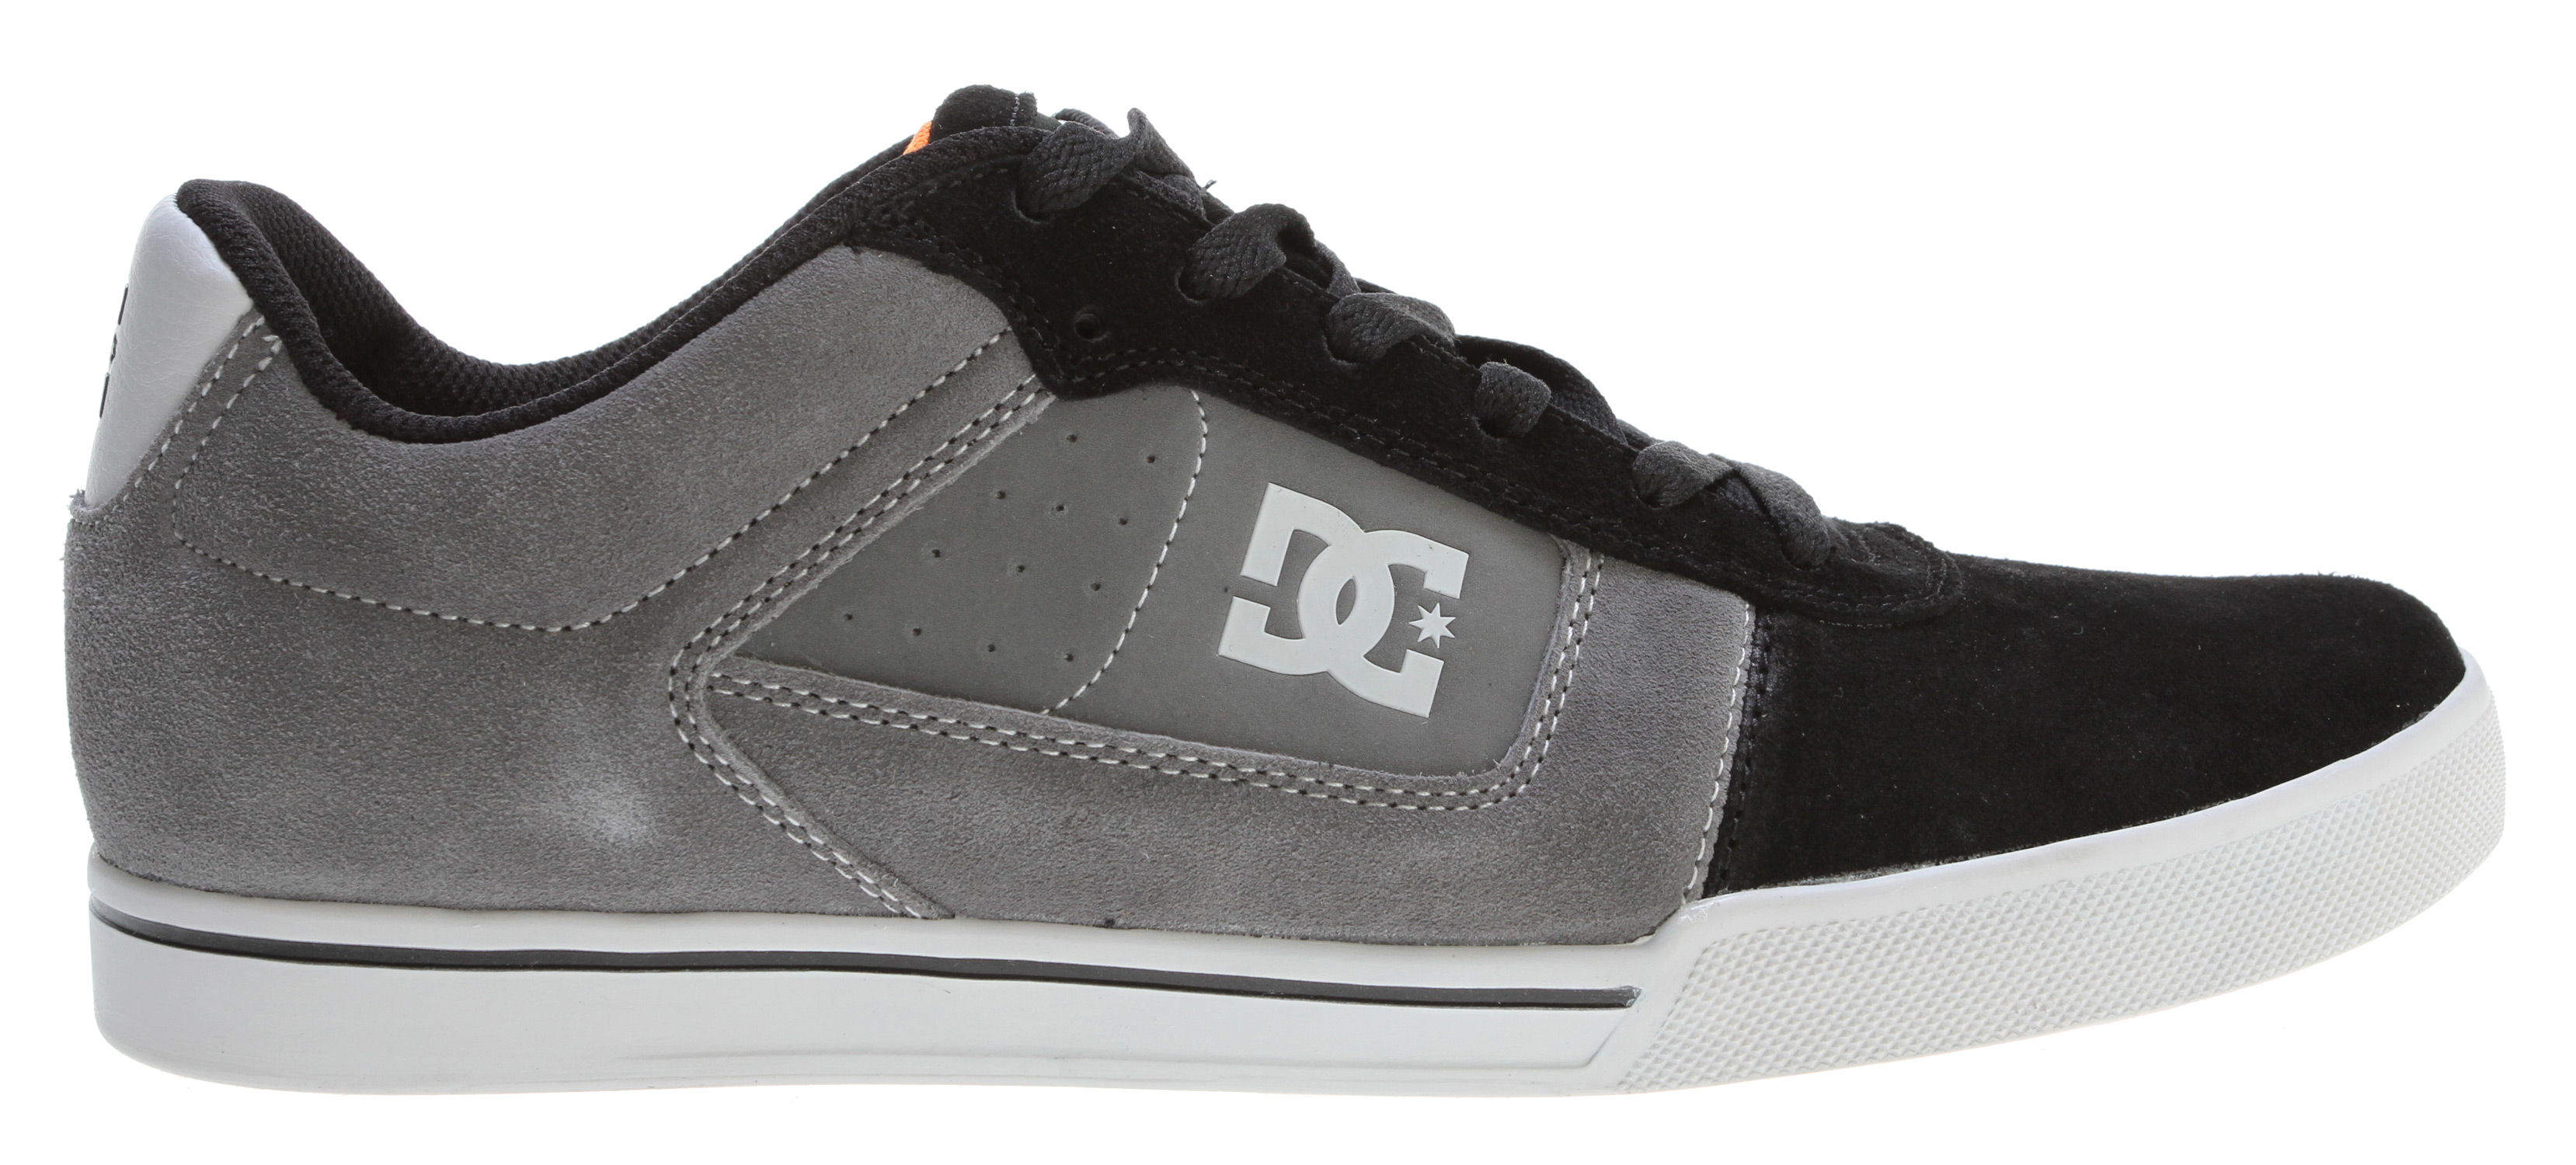 Skateboard Designed by Chris ColeKey Features of the DC Cole Pro Skate Shoes: Clean toe with a classic skate style outsole with cup sole support Hf weld logo Heavy duty suede upper Vent holes in upper for increased airflow Foam padded tongue for added comfort and support Isolated collar foam for heel lock DC's performance cup sole Abrasion-resistant sticky rubber outsole Unique designed multifunctional tread pattern for durability and grip - $45.95